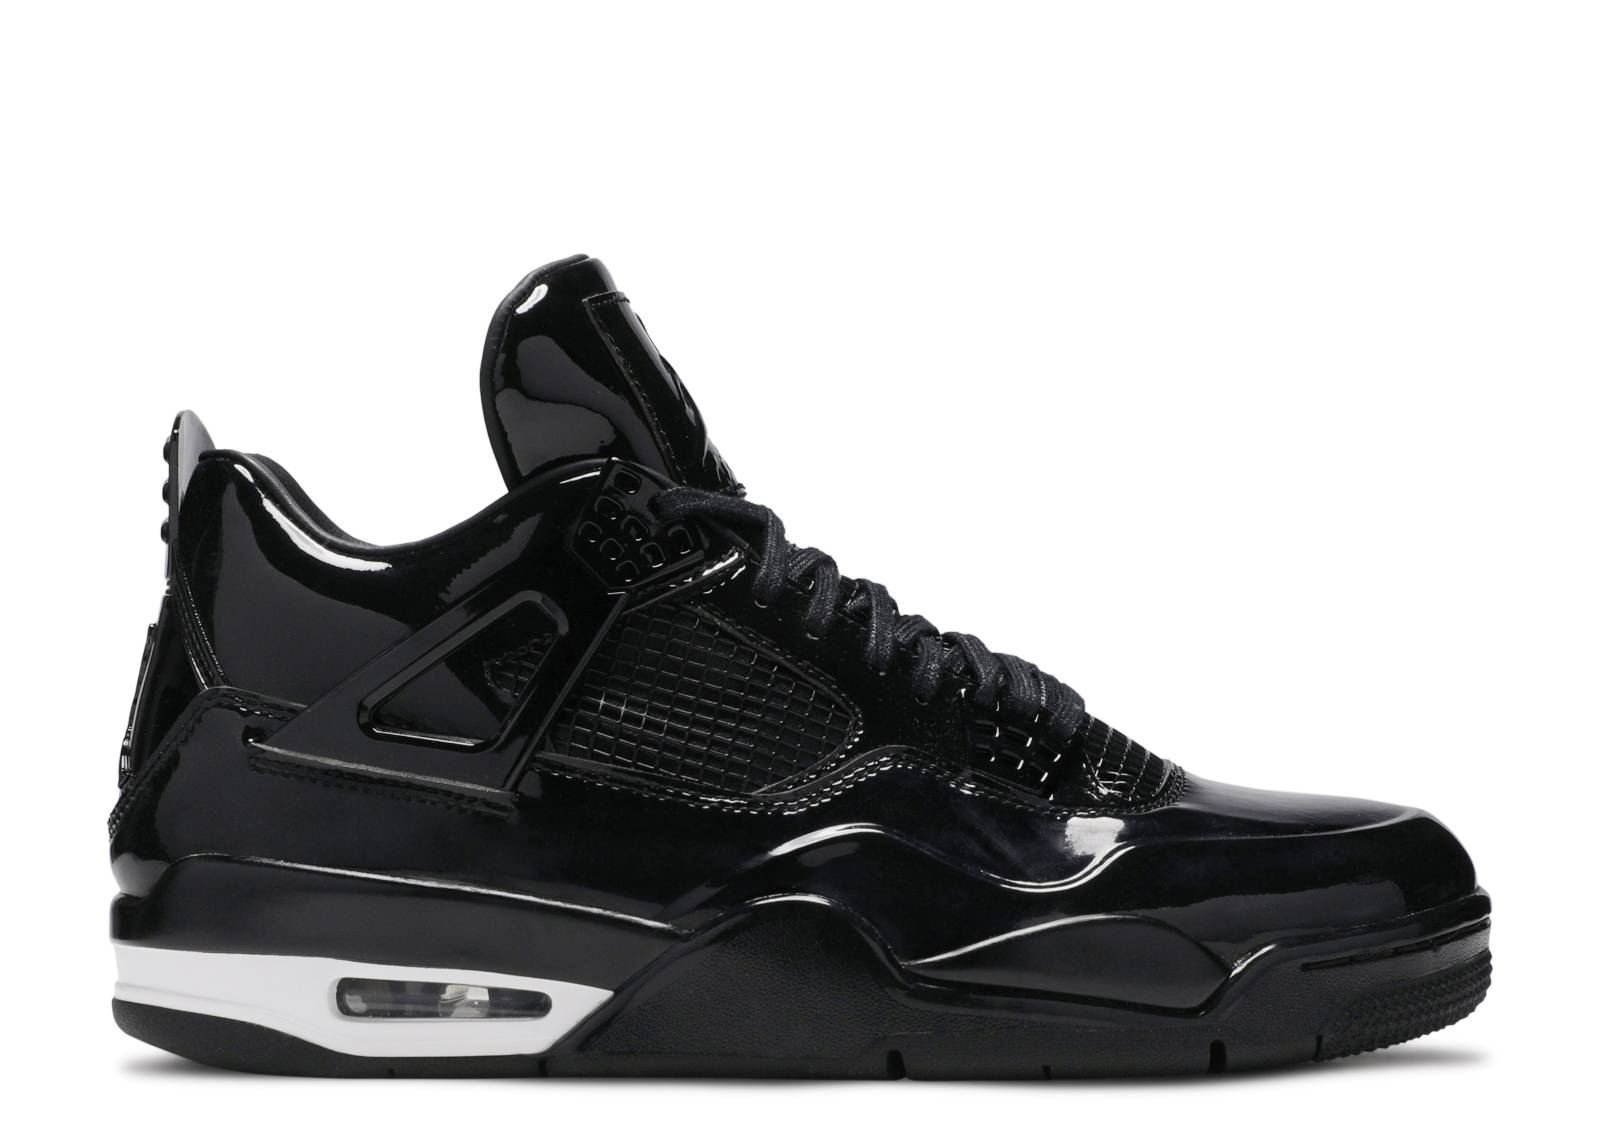 Air Jordan Hommes 11lab4 Chaussures De Basket-ball